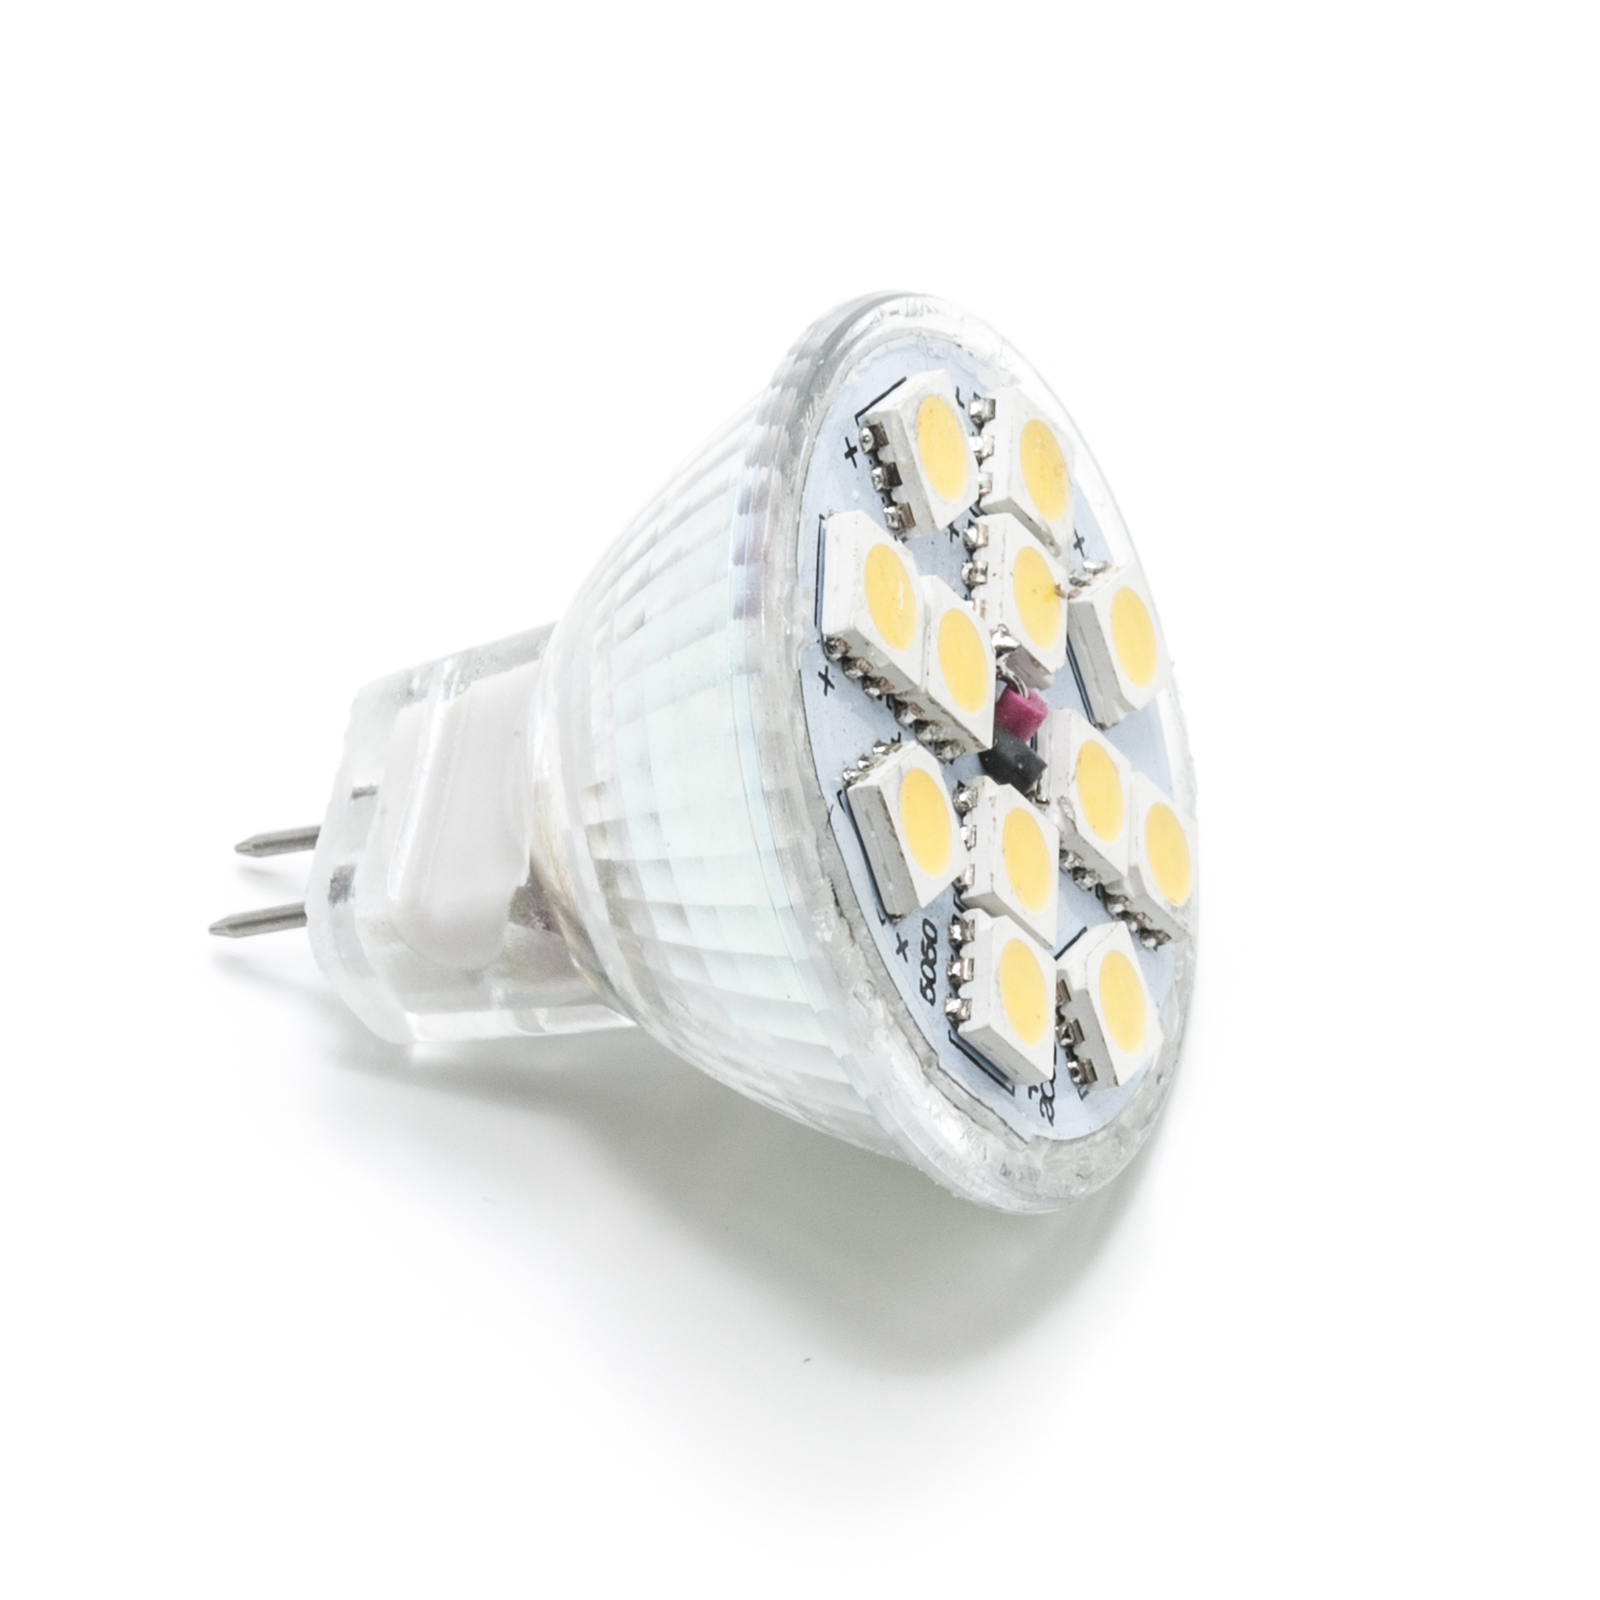 Led spotlight MR11 3w high power bright 12v g4 12 leds smd 5050